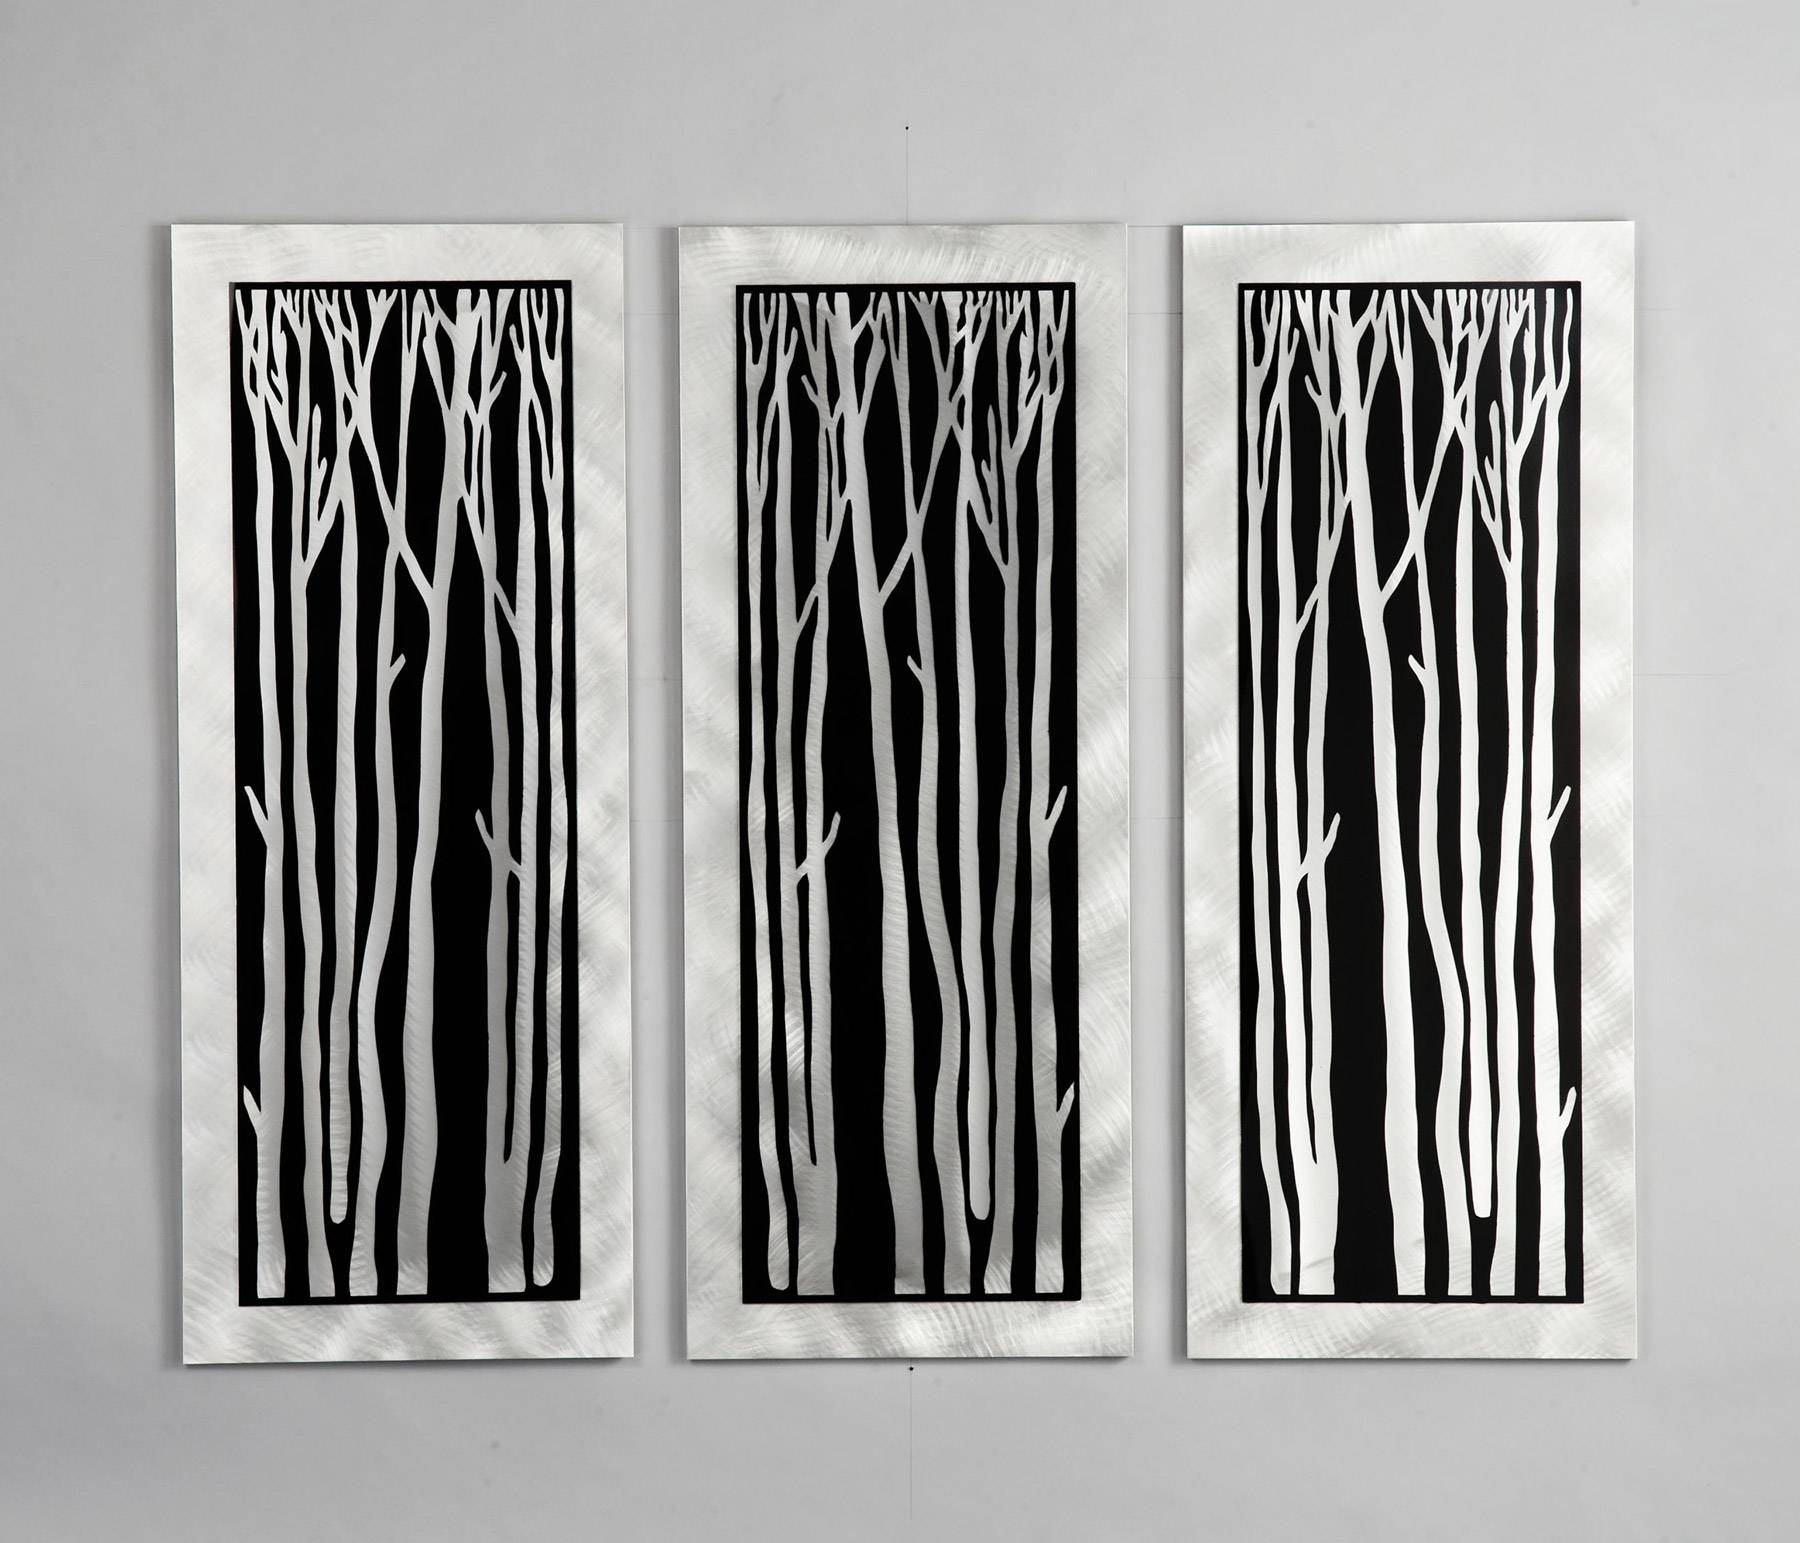 Lighting Wg40502 Silver Birch 3 Piece Wall Graphic Pertaining To Most Recently Released 3 Piece Wall Art (View 18 of 30)